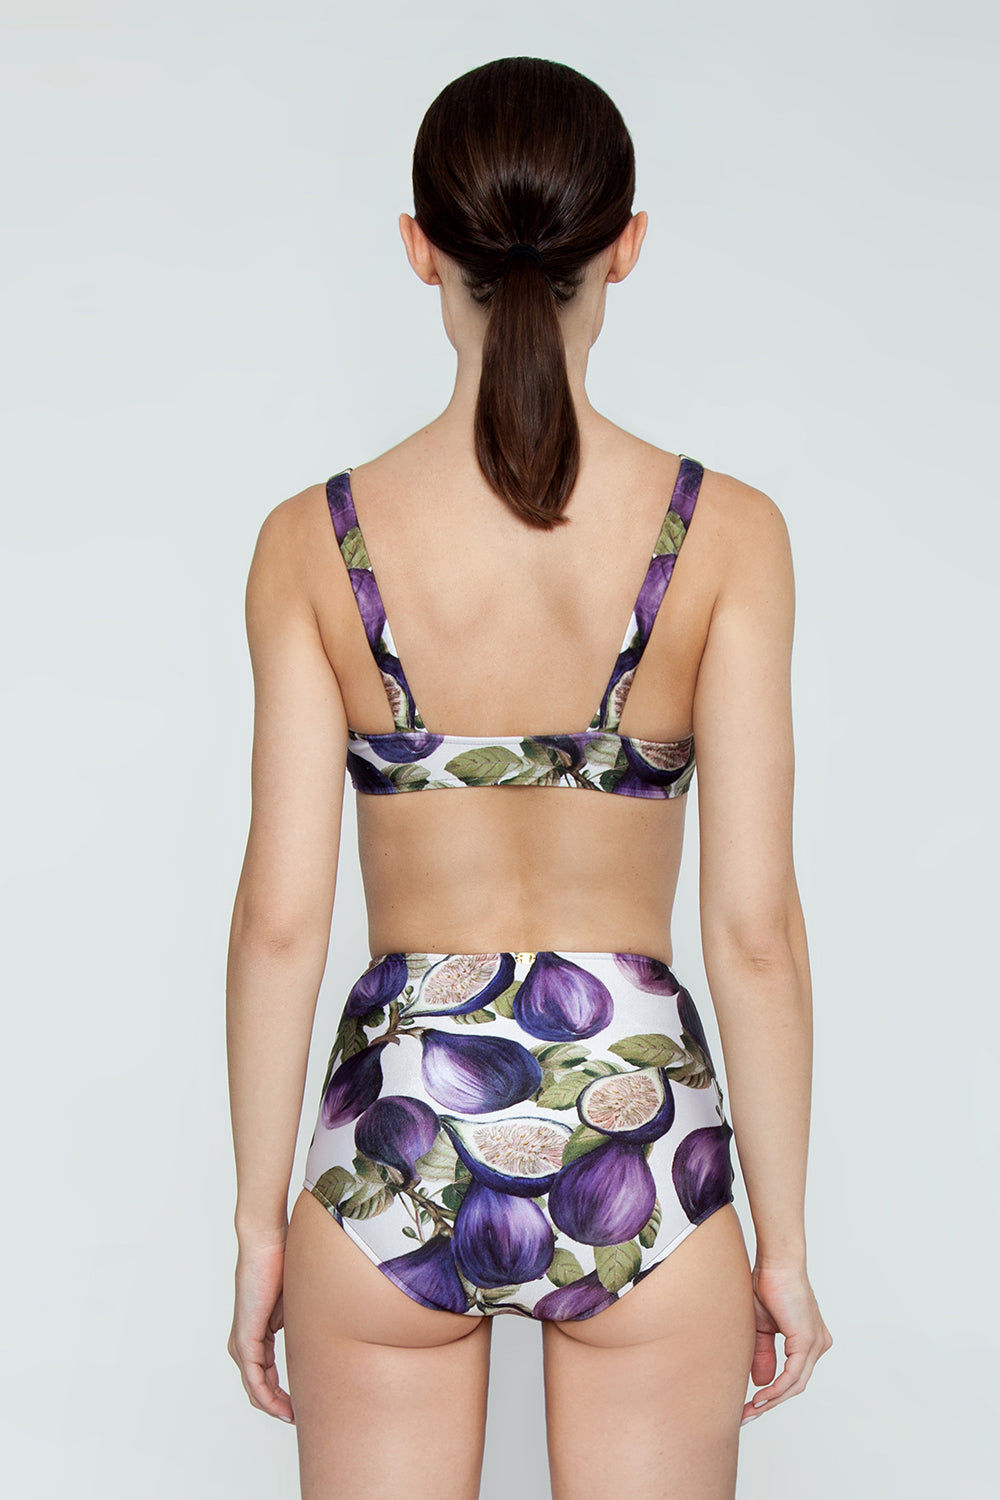 ADRIANA DEGREAS Knot Front Bikini Top - Fig Purple Print Bikini Top | Fig Purple Print| Adriana Degreas Knot Front Bikini Top - Fig Purple Print Scoop neckline Bralette style Knot front detail  Thick shoulder straps Back View